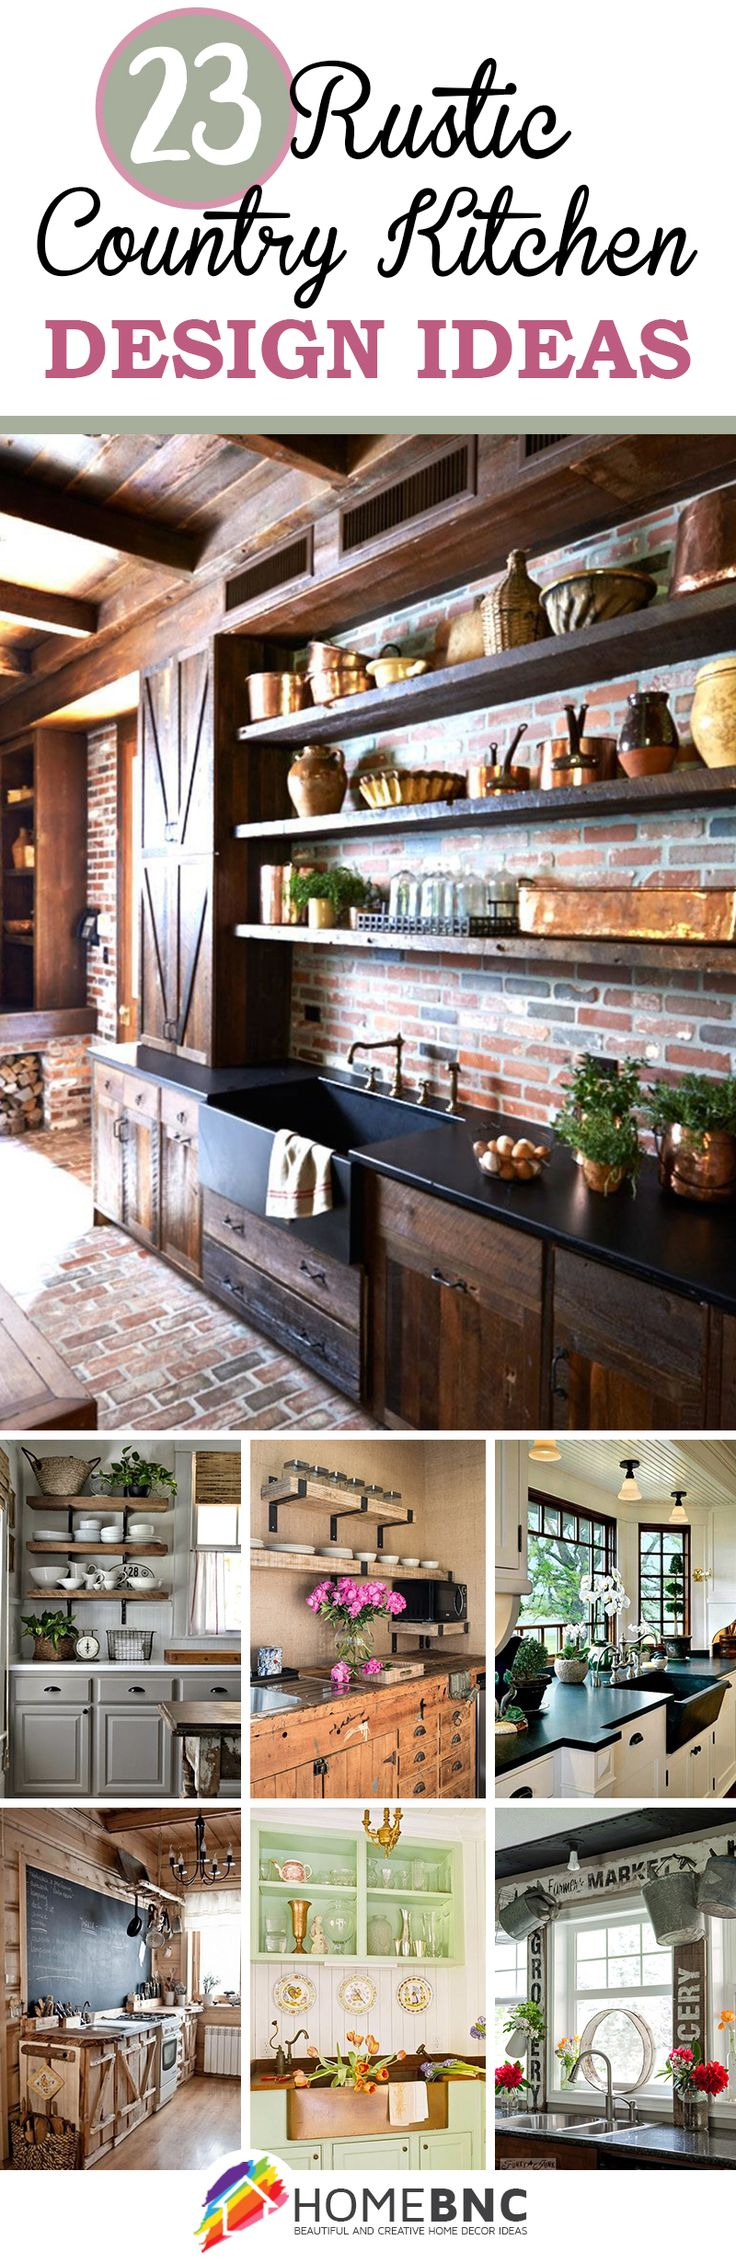 Rustic Country Kitchen Decorations